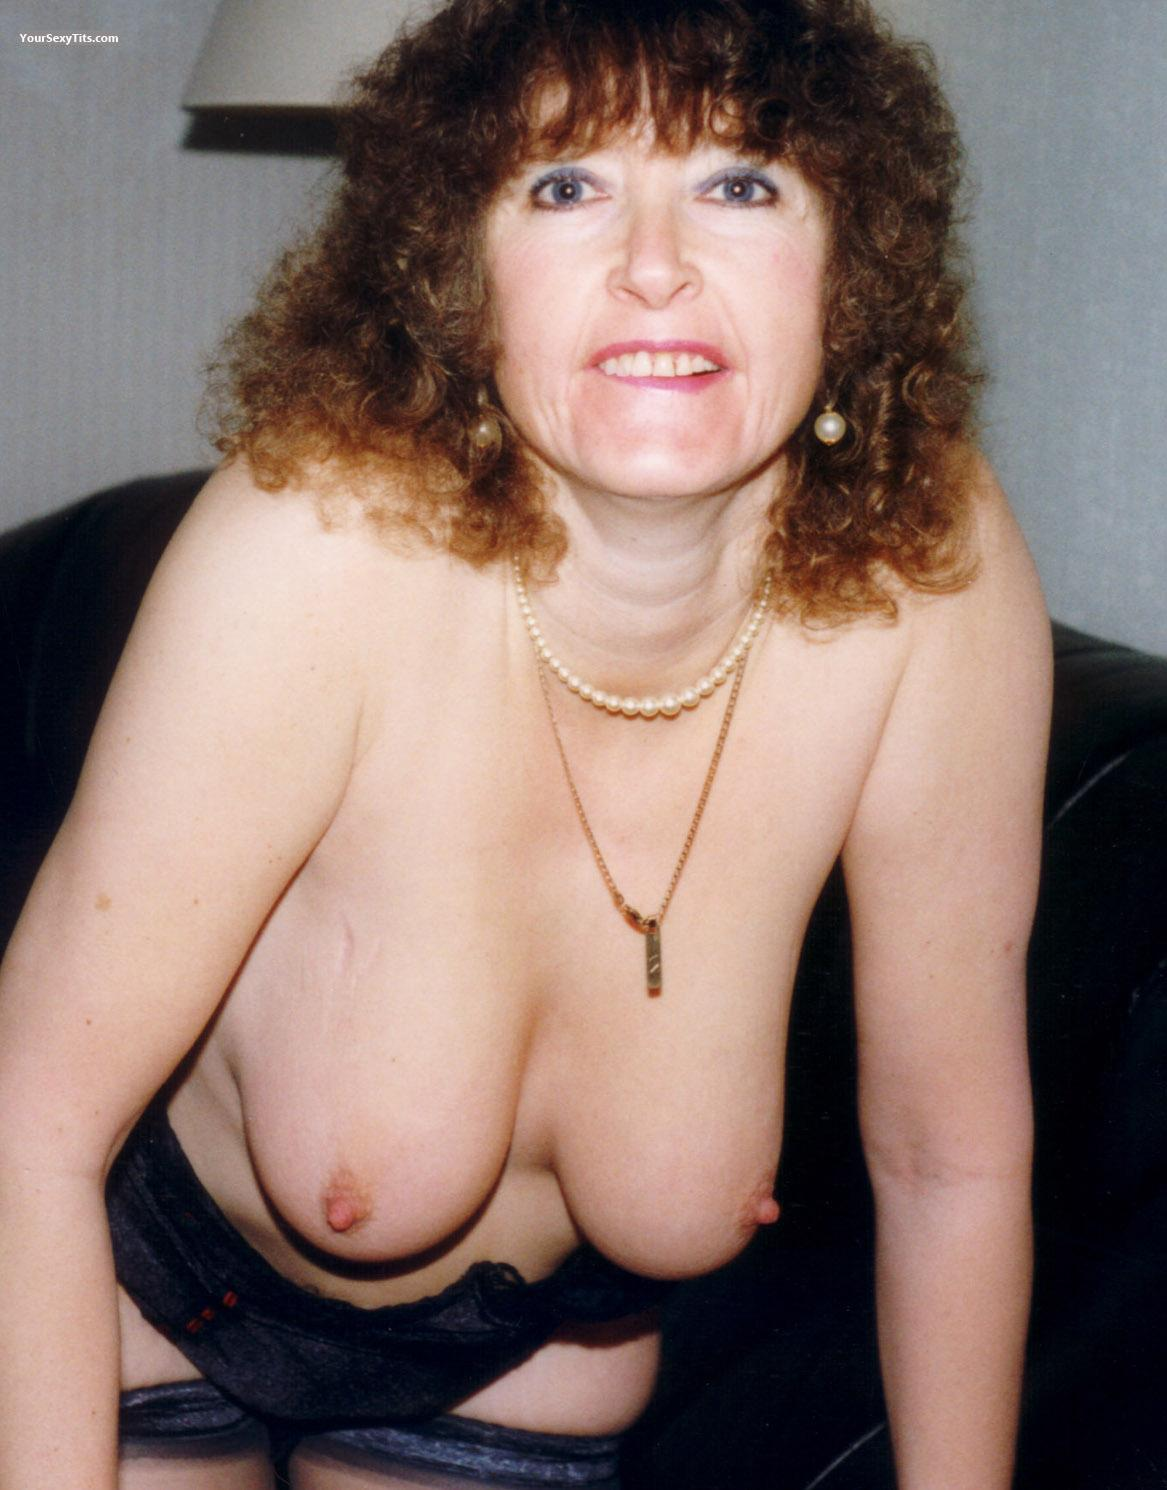 Medium Tits Topless Widge